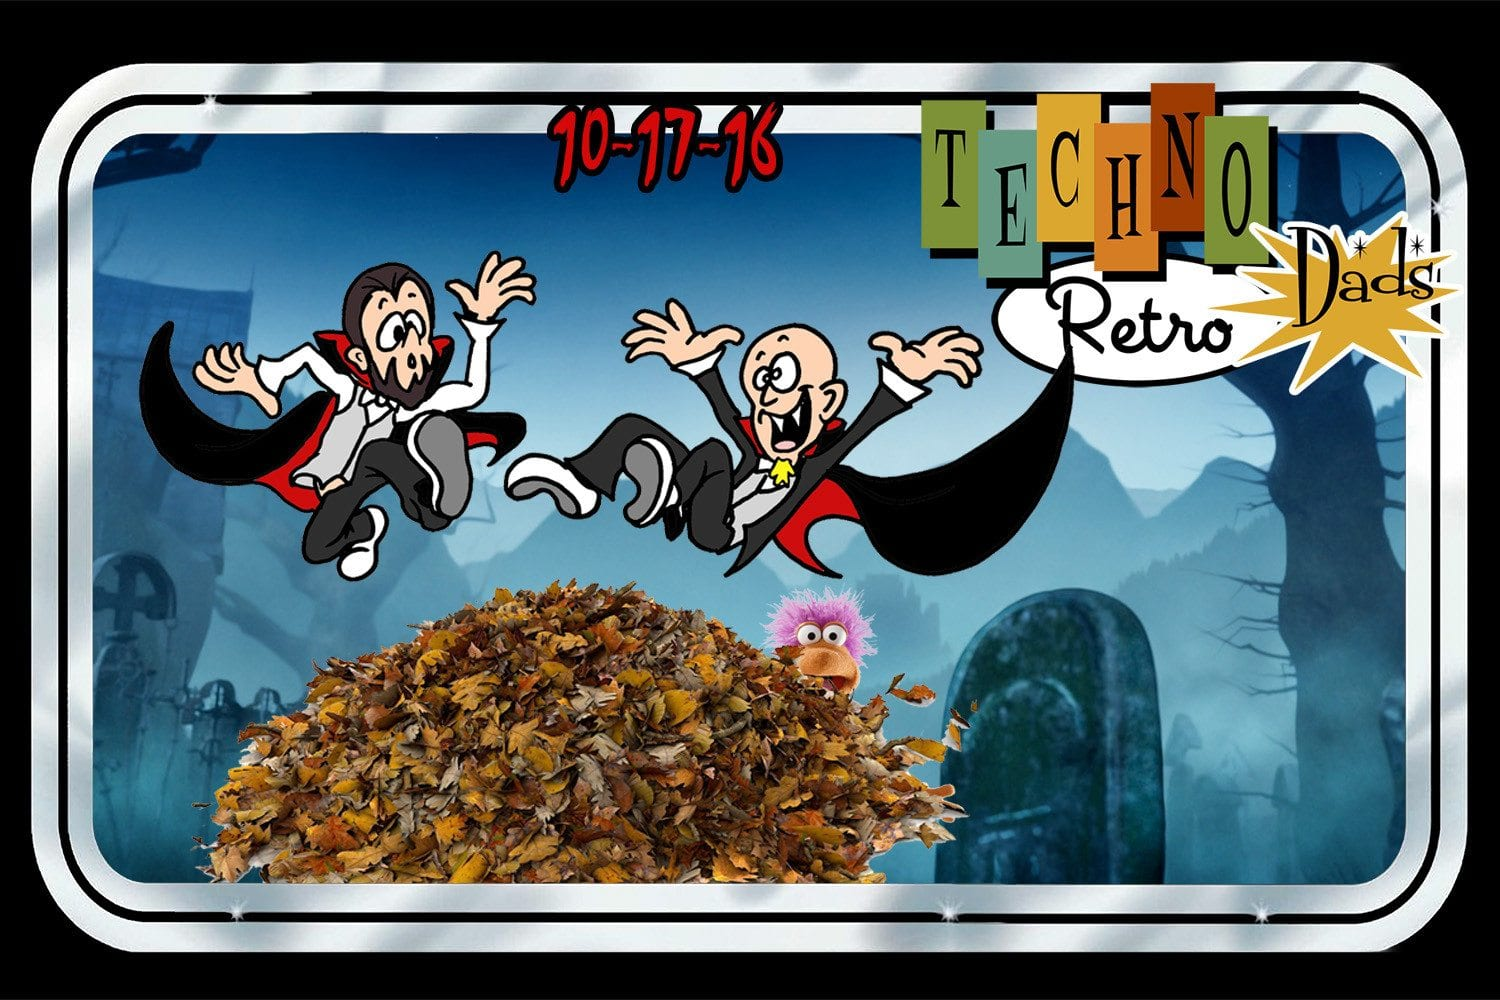 RetroZap TechnoRetro Dads Falling Leaves